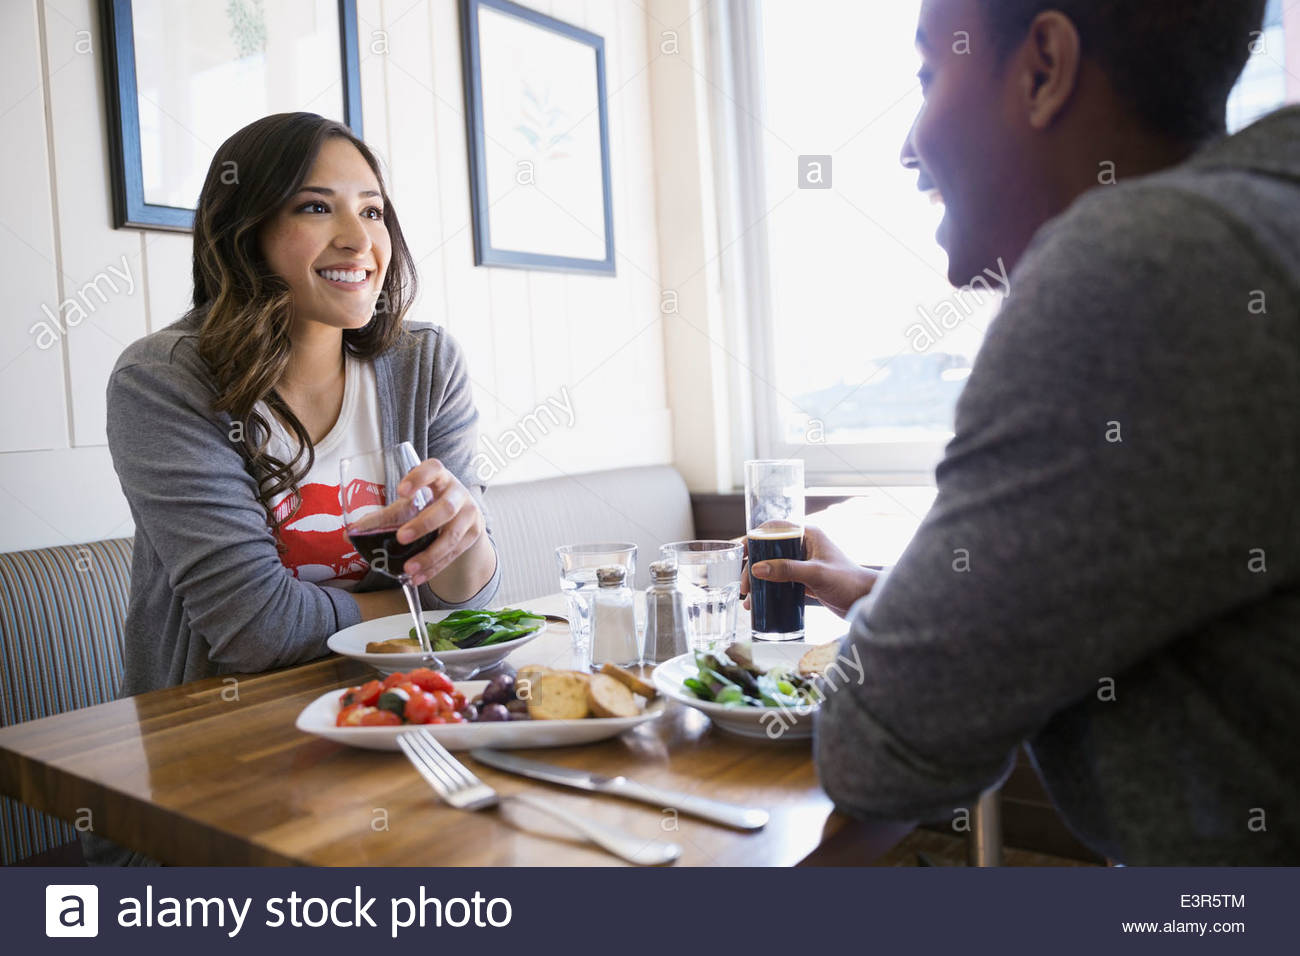 Couple enjoying lunch at bistro table - Stock Image